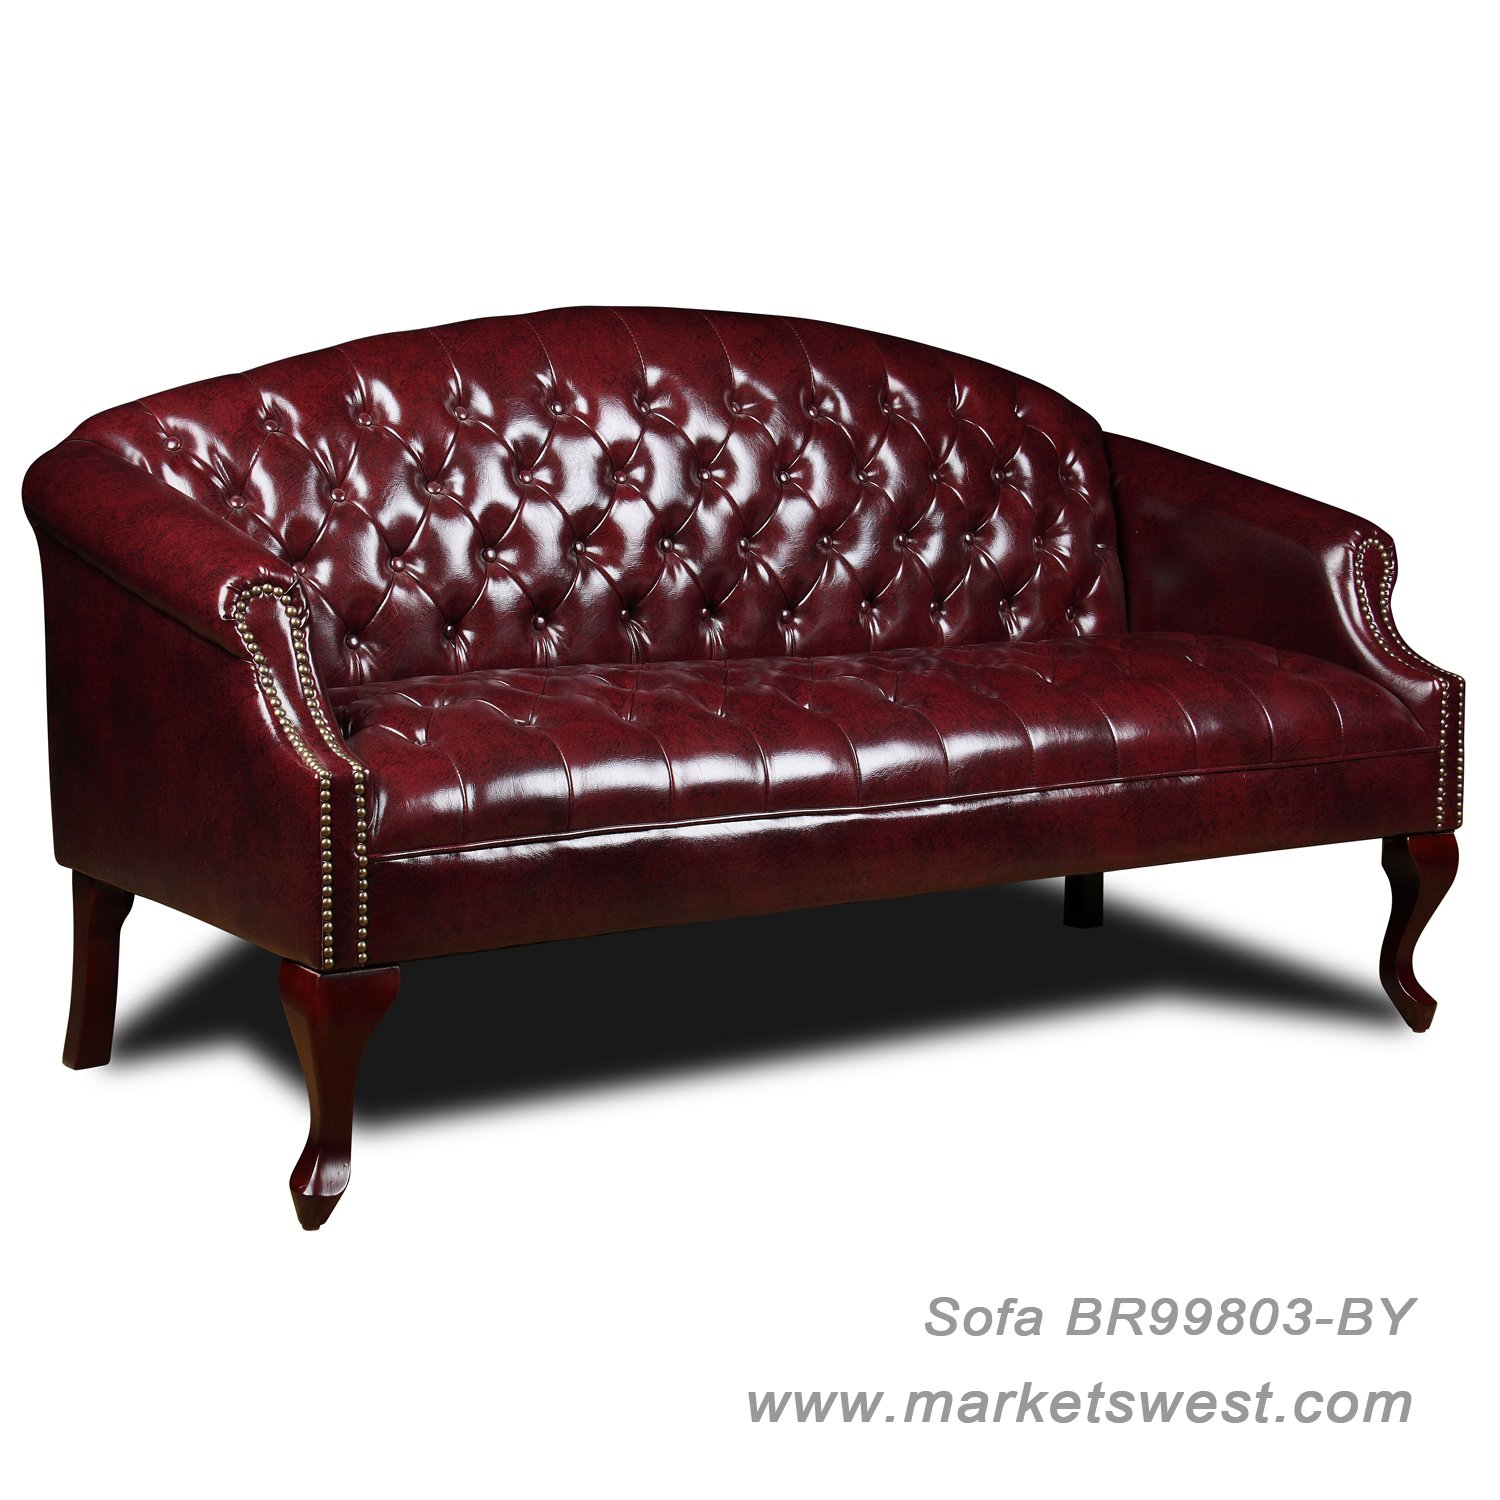 tufted office chair with Boss Traditional Button Tufted Style Sofa P70976 on Bedroom Ideas For Women together with White Leather Desk Chair moreover Admire Modern Faux Leather Office Chair Red p 1814 further Knoll Florence Knoll Sofa in addition 117156 Fairmont Dining Chair.